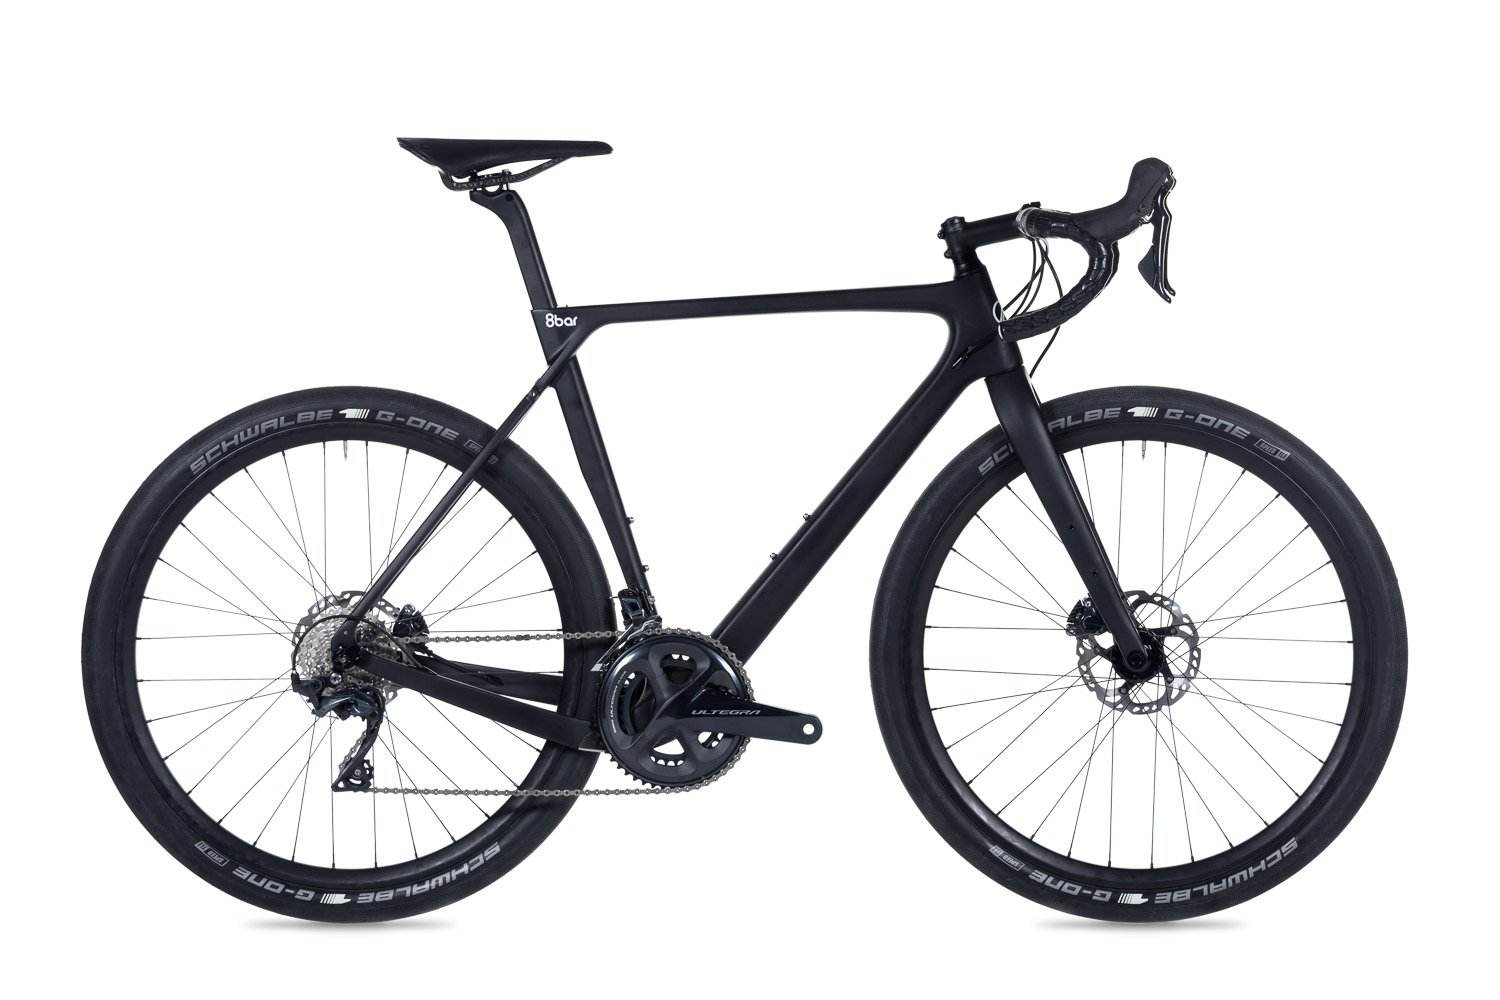 8bar-complete-bike-grunewald-carbon-gravel-pro-black-studio-lr-11